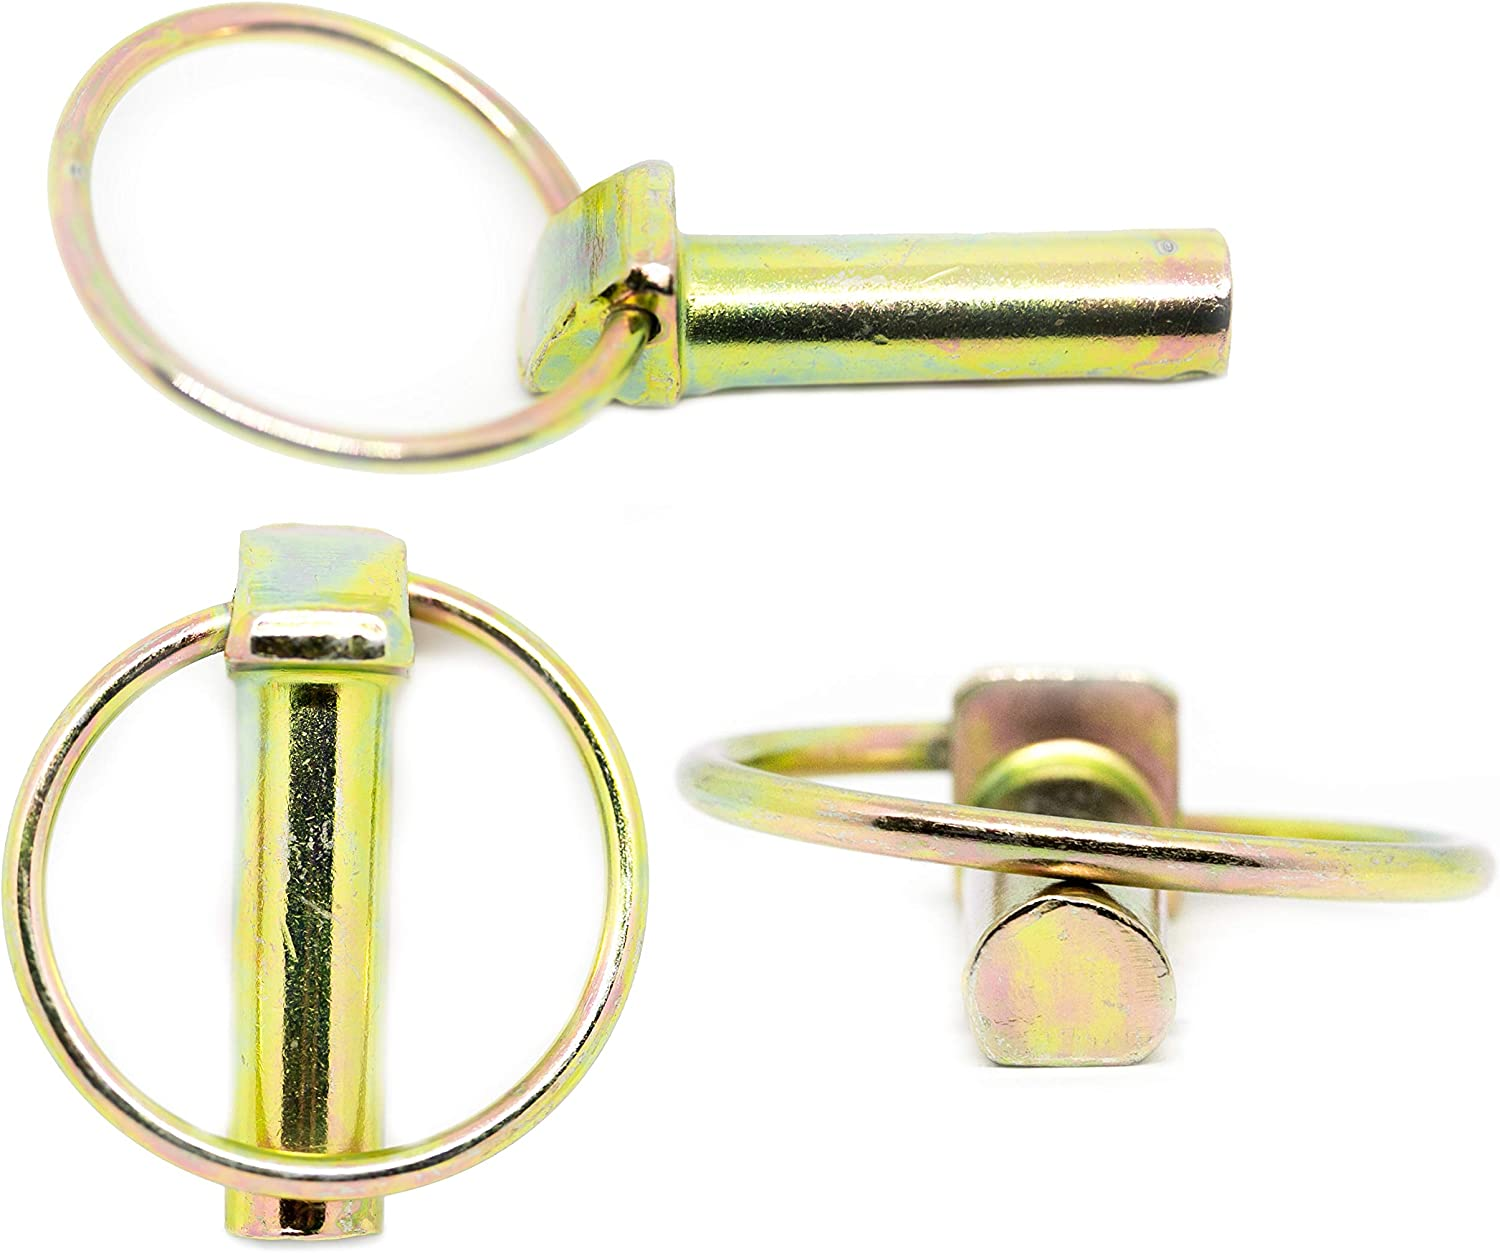 GALVANIZED STEEL LYNCH PIN 7MM 8MM 10MM TRAILOR TRACTOR SAFETY CLIP LOCK TRACTOR